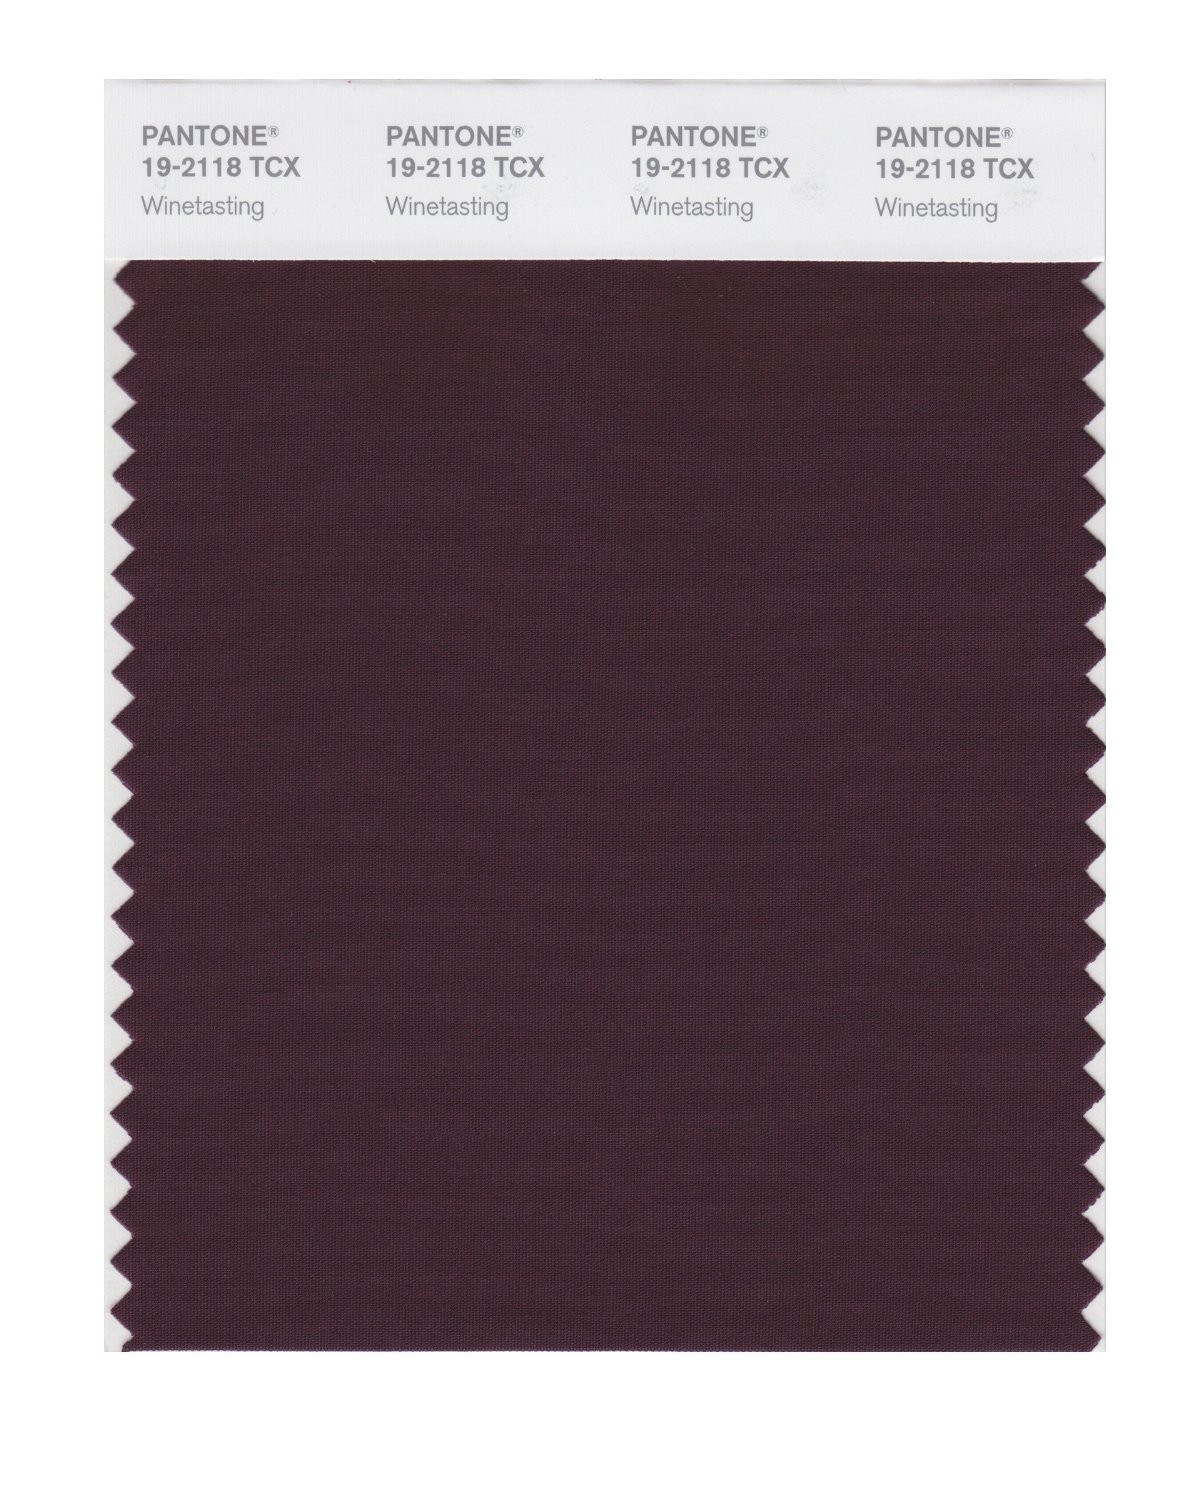 Pantone 19-2118 TCX Swatch Card Winetasting